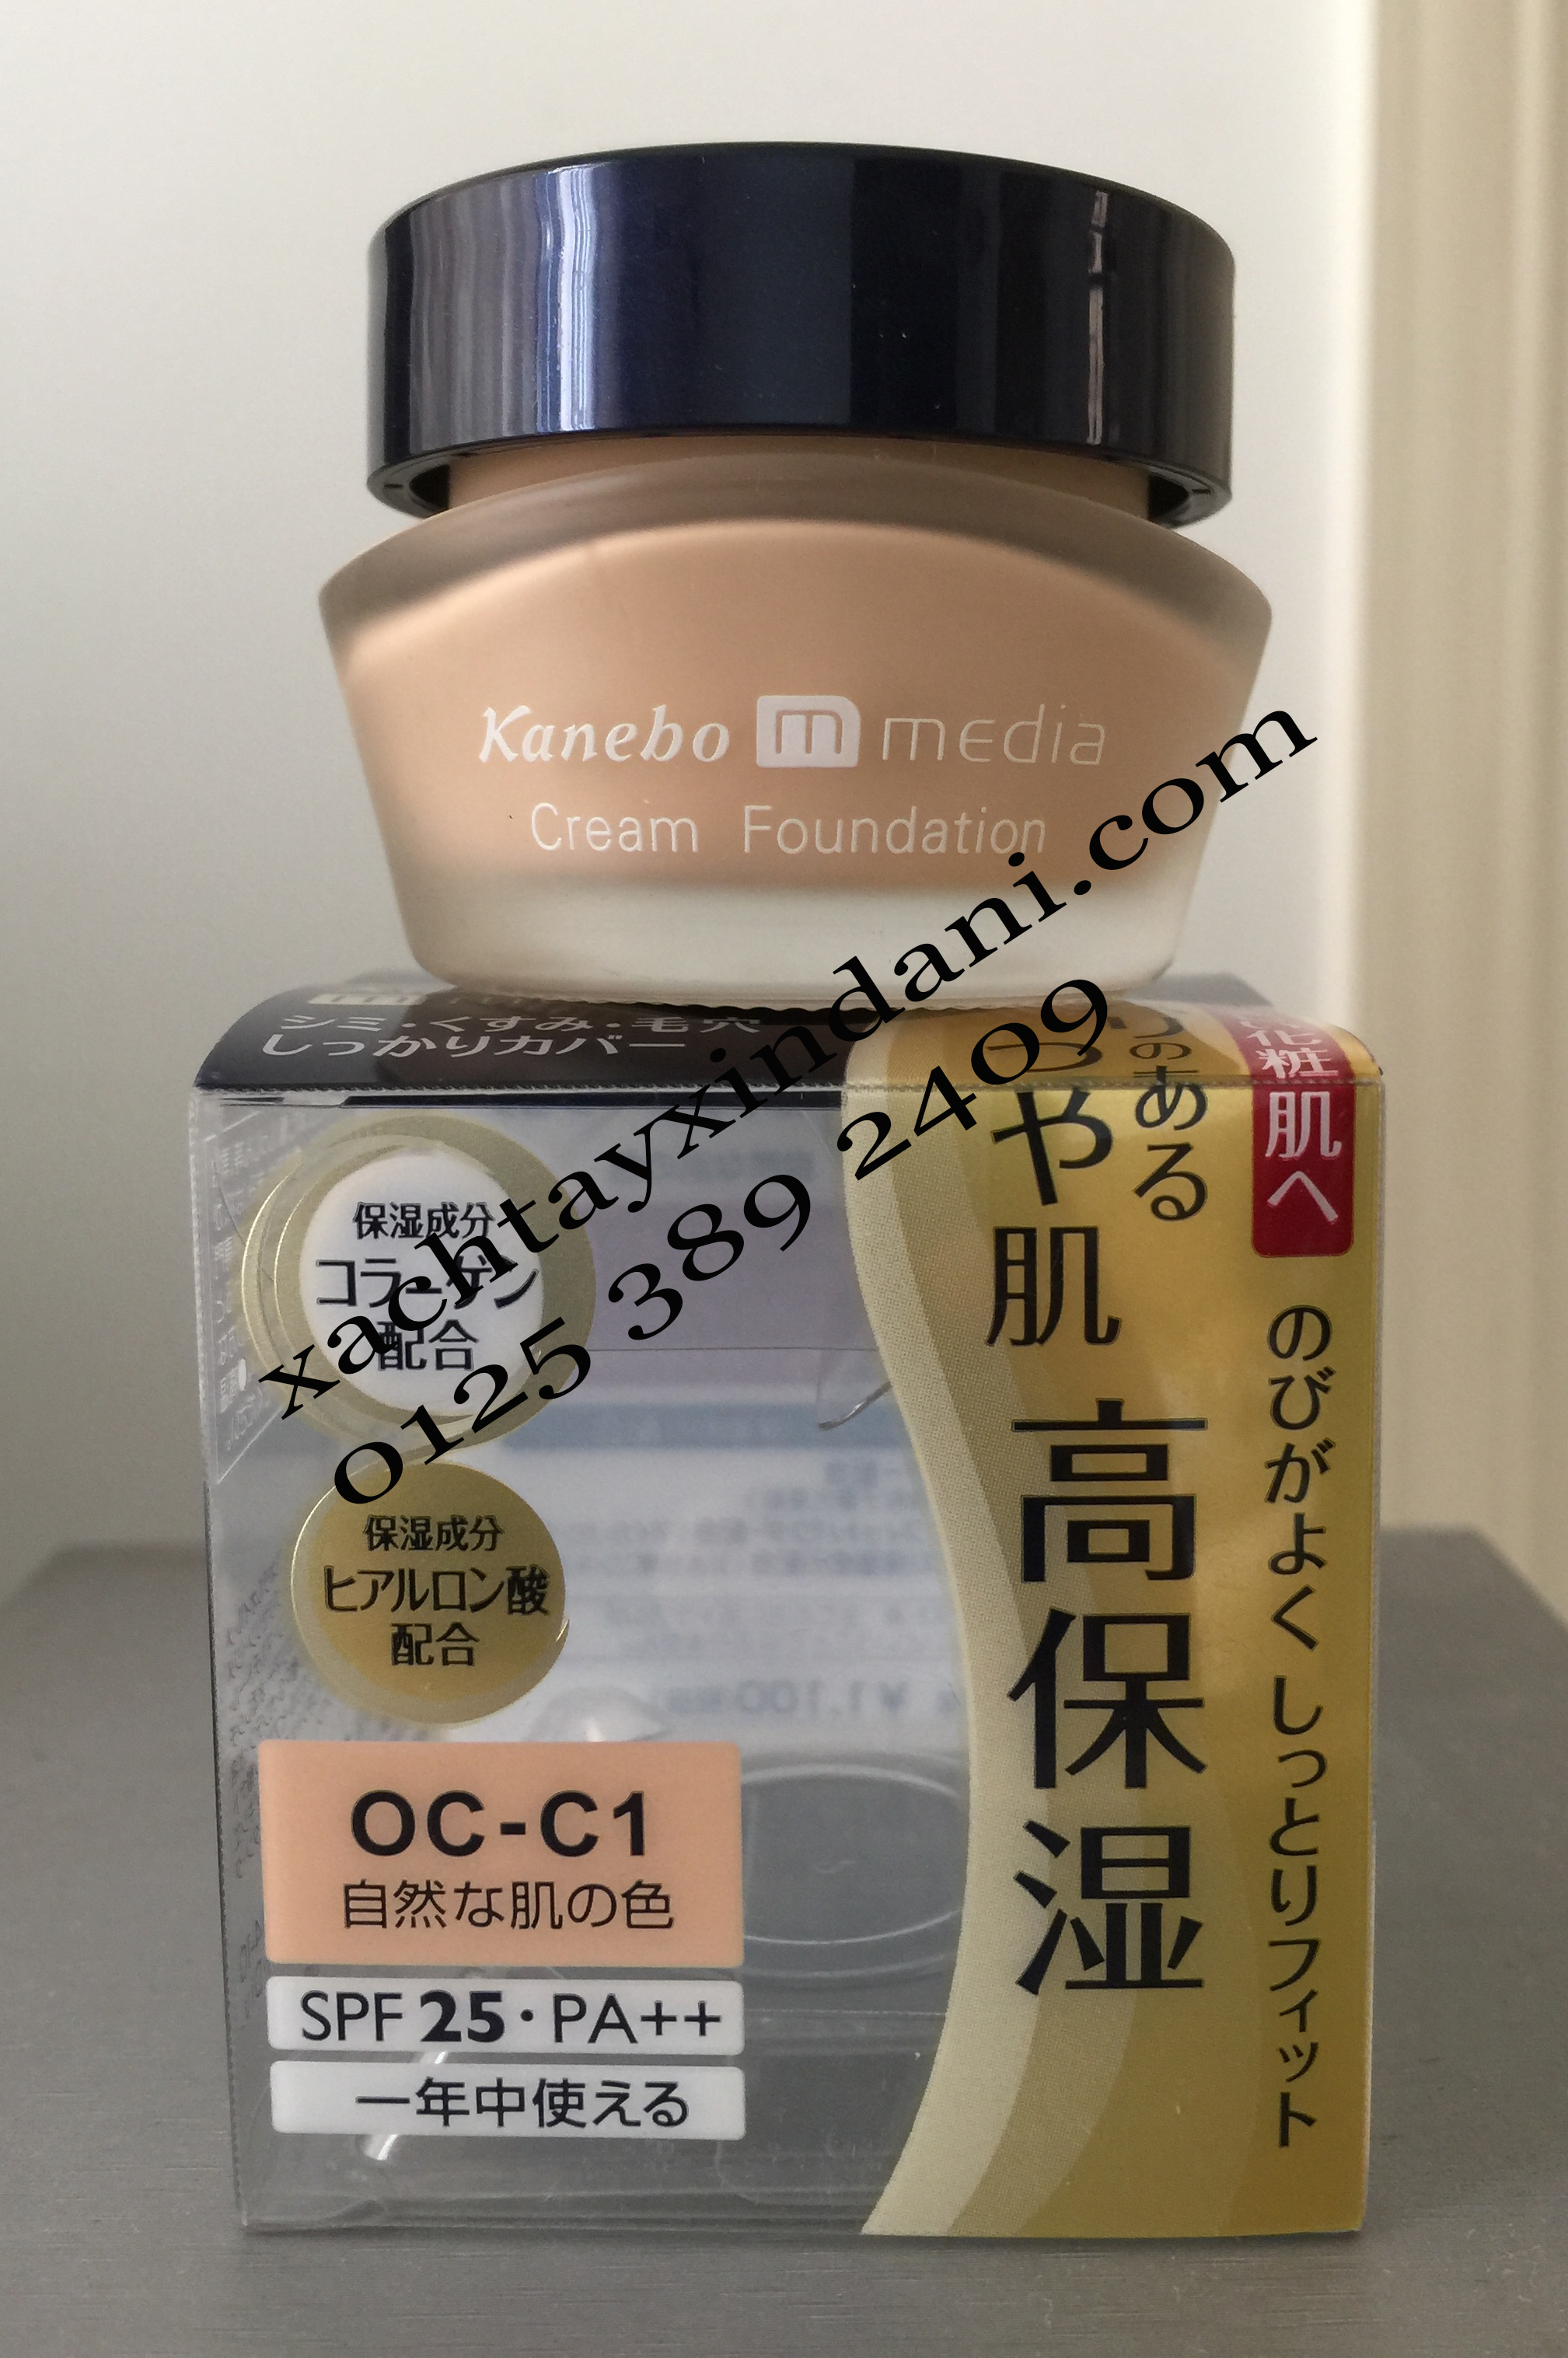 Kem nền Kanebo Media Cream Foundation